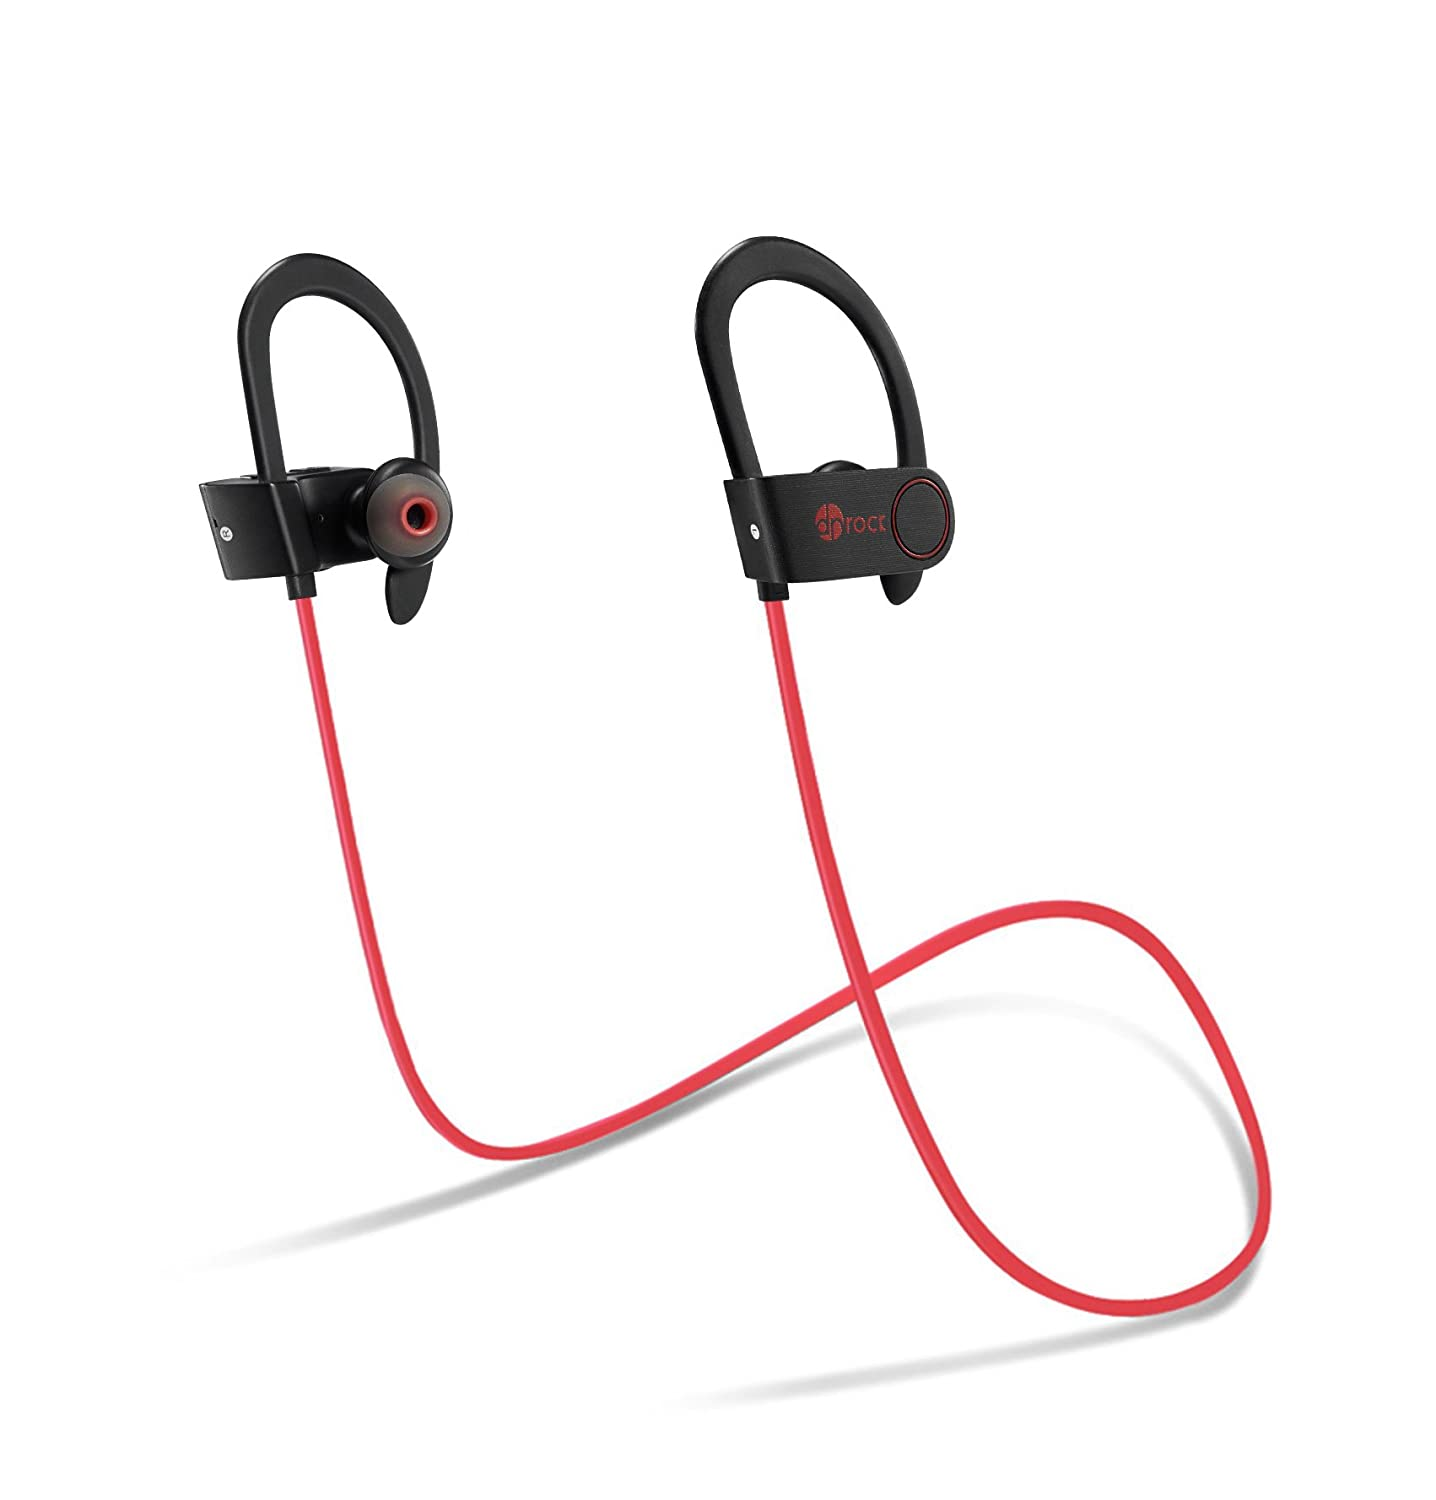 Bluetooth Headphones Wireless, DR ROCK in-Ear Earbuds w Mic Hands-Free Over-Ear Hook Headset Sweatproof Stereo Sports Earphone for Gym Running Workout Noise Cancelling